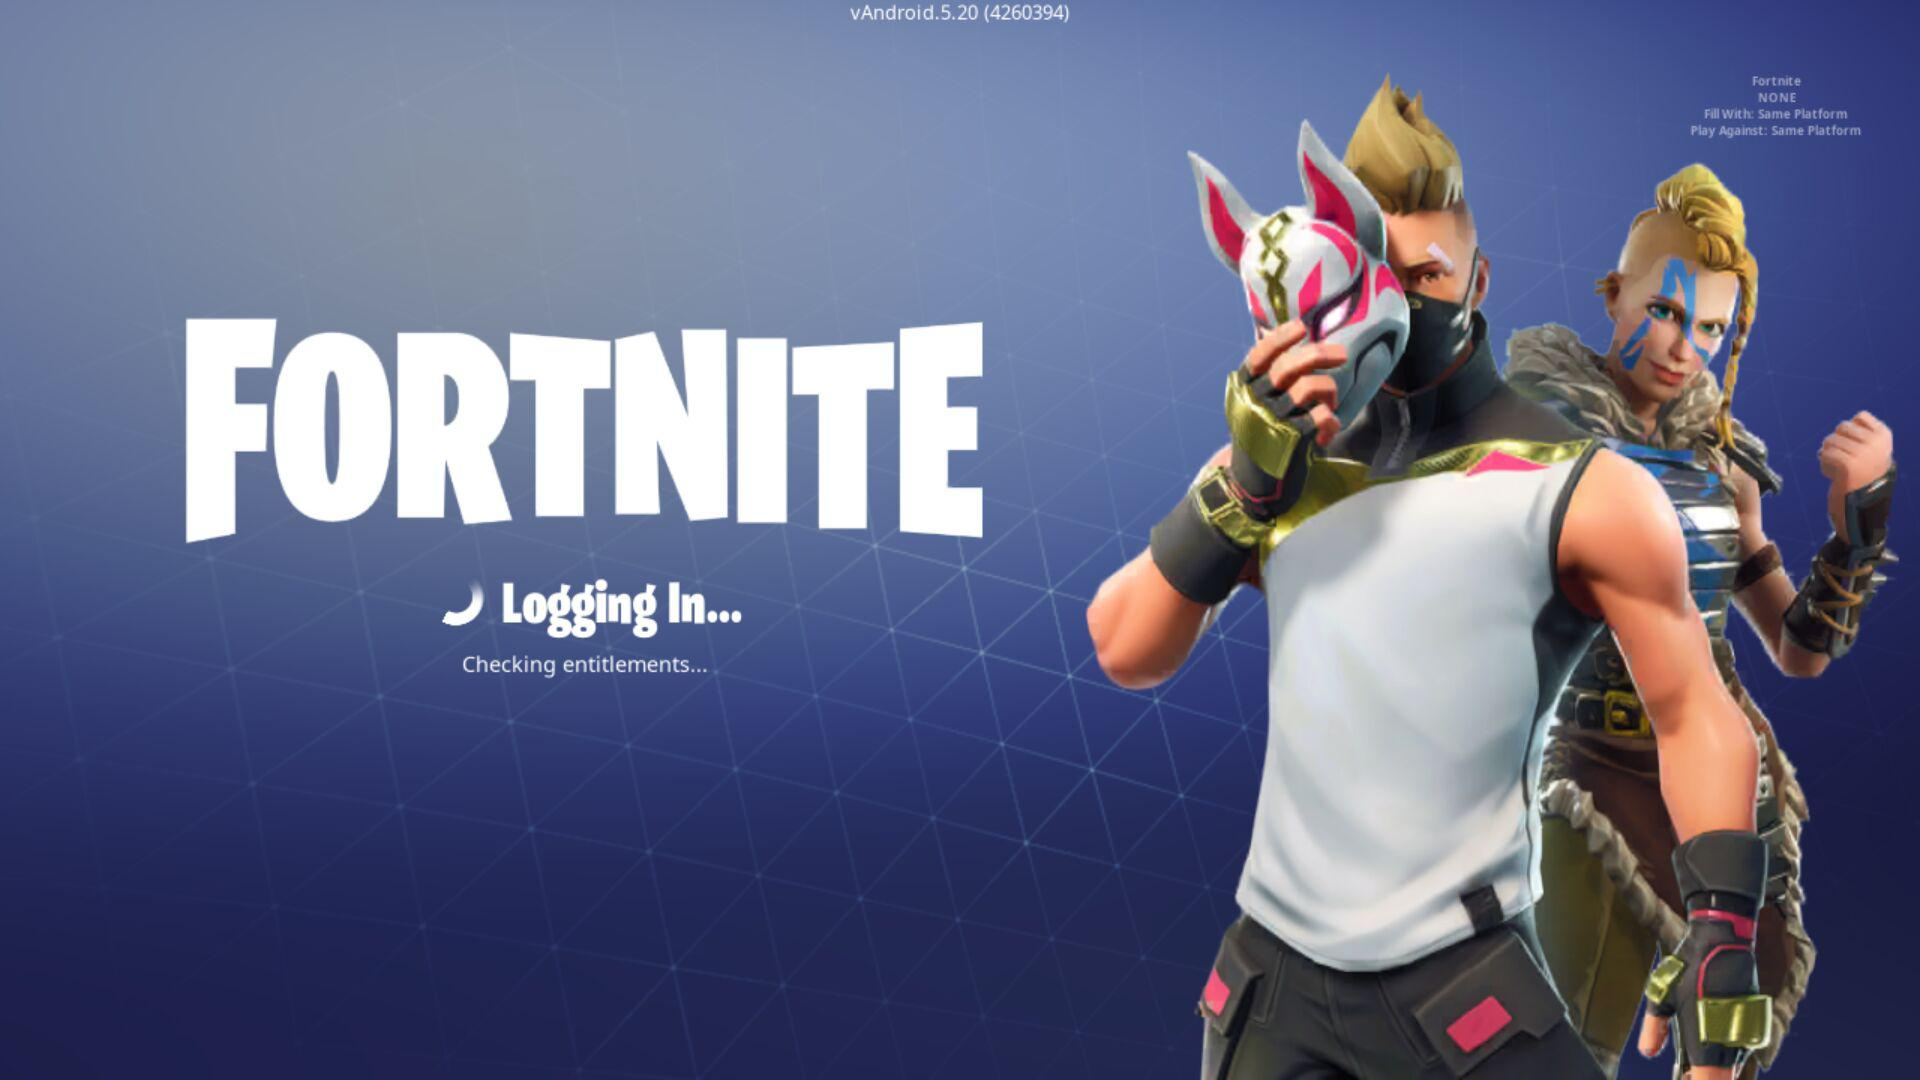 Fortnite 5.2.0-4268994-Android Screen 3